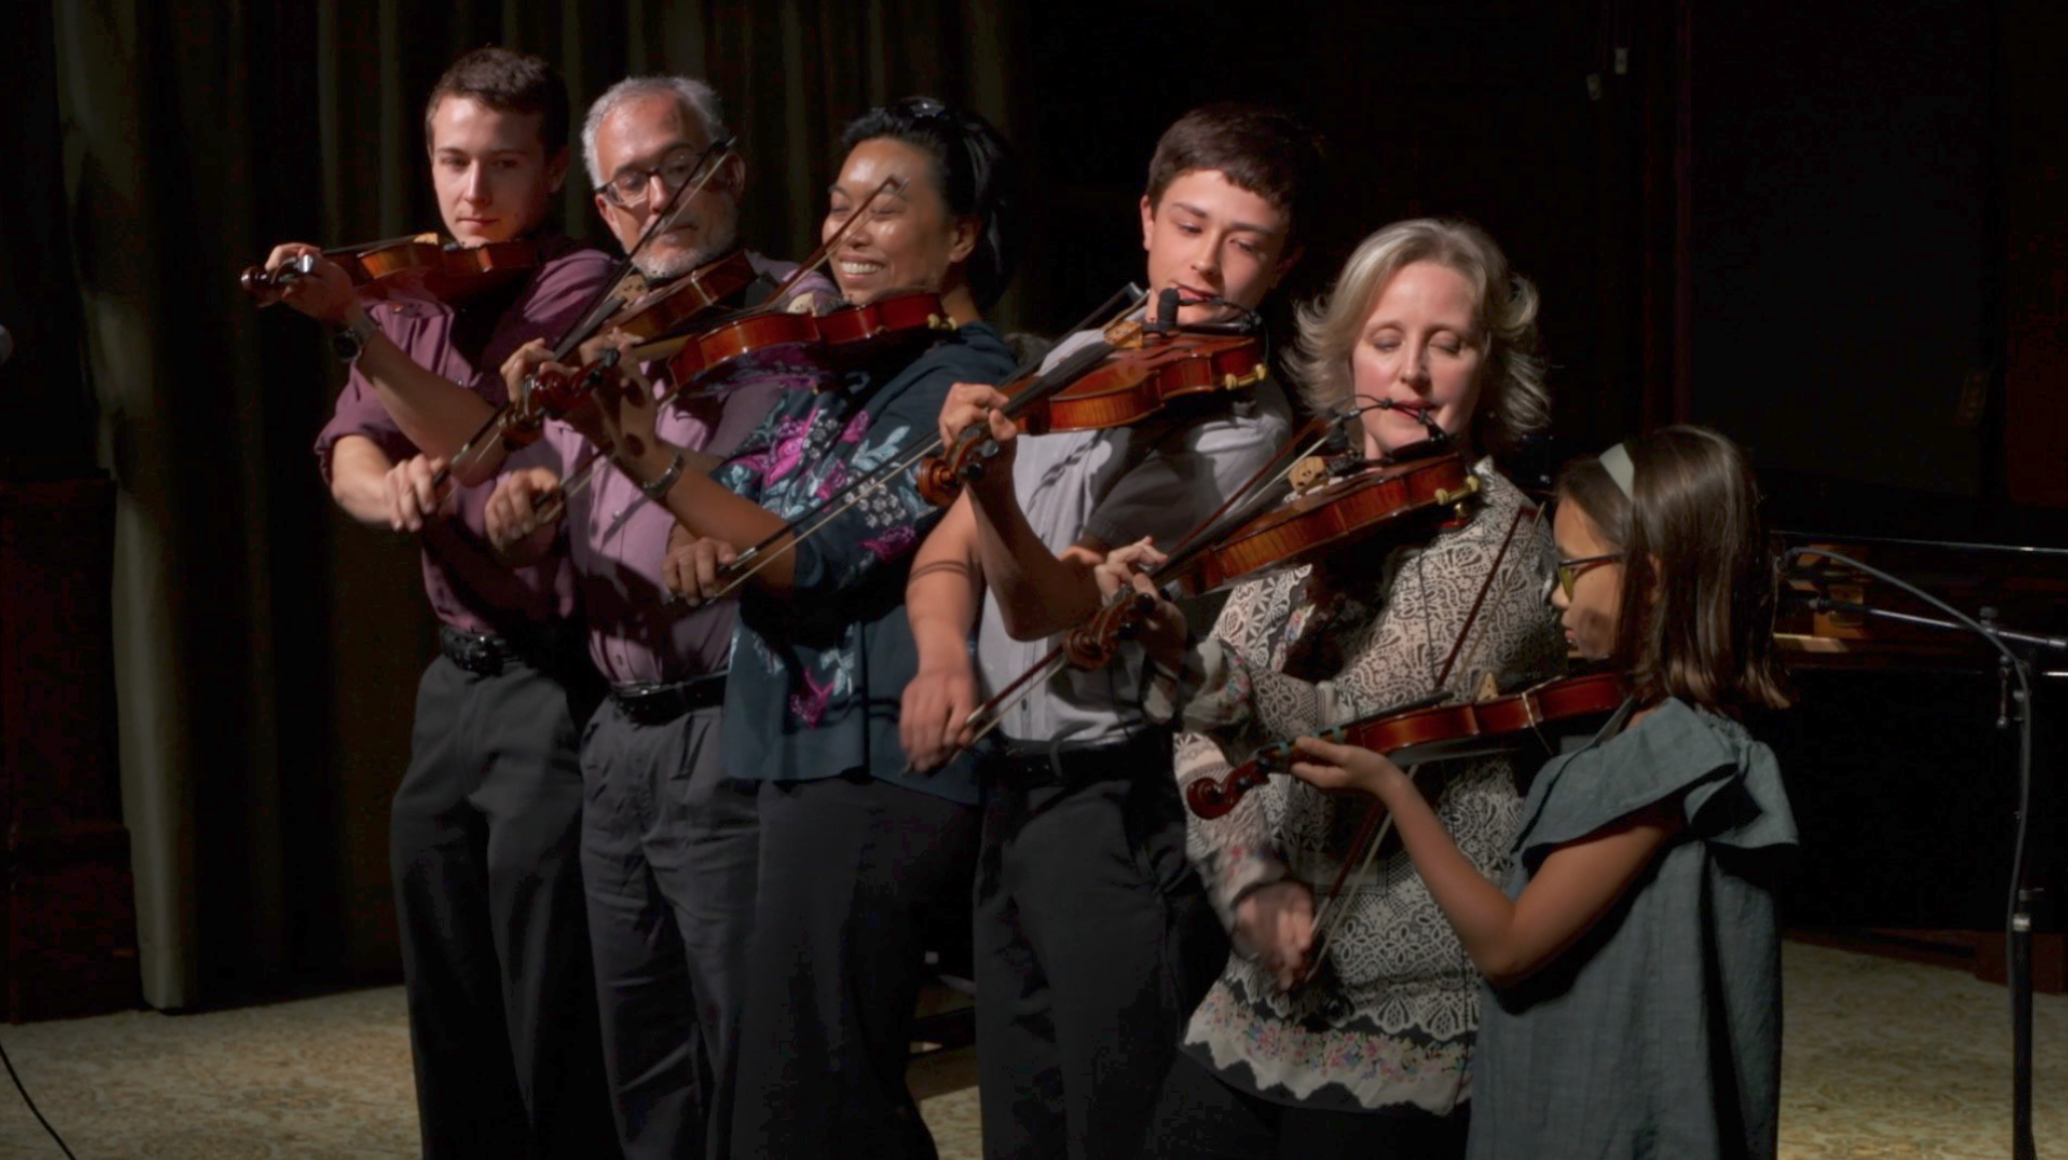 """Members of the Koehler-Foisy & Kelly families performing the trick called """"the 6 headed Fiddle Monster!"""""""